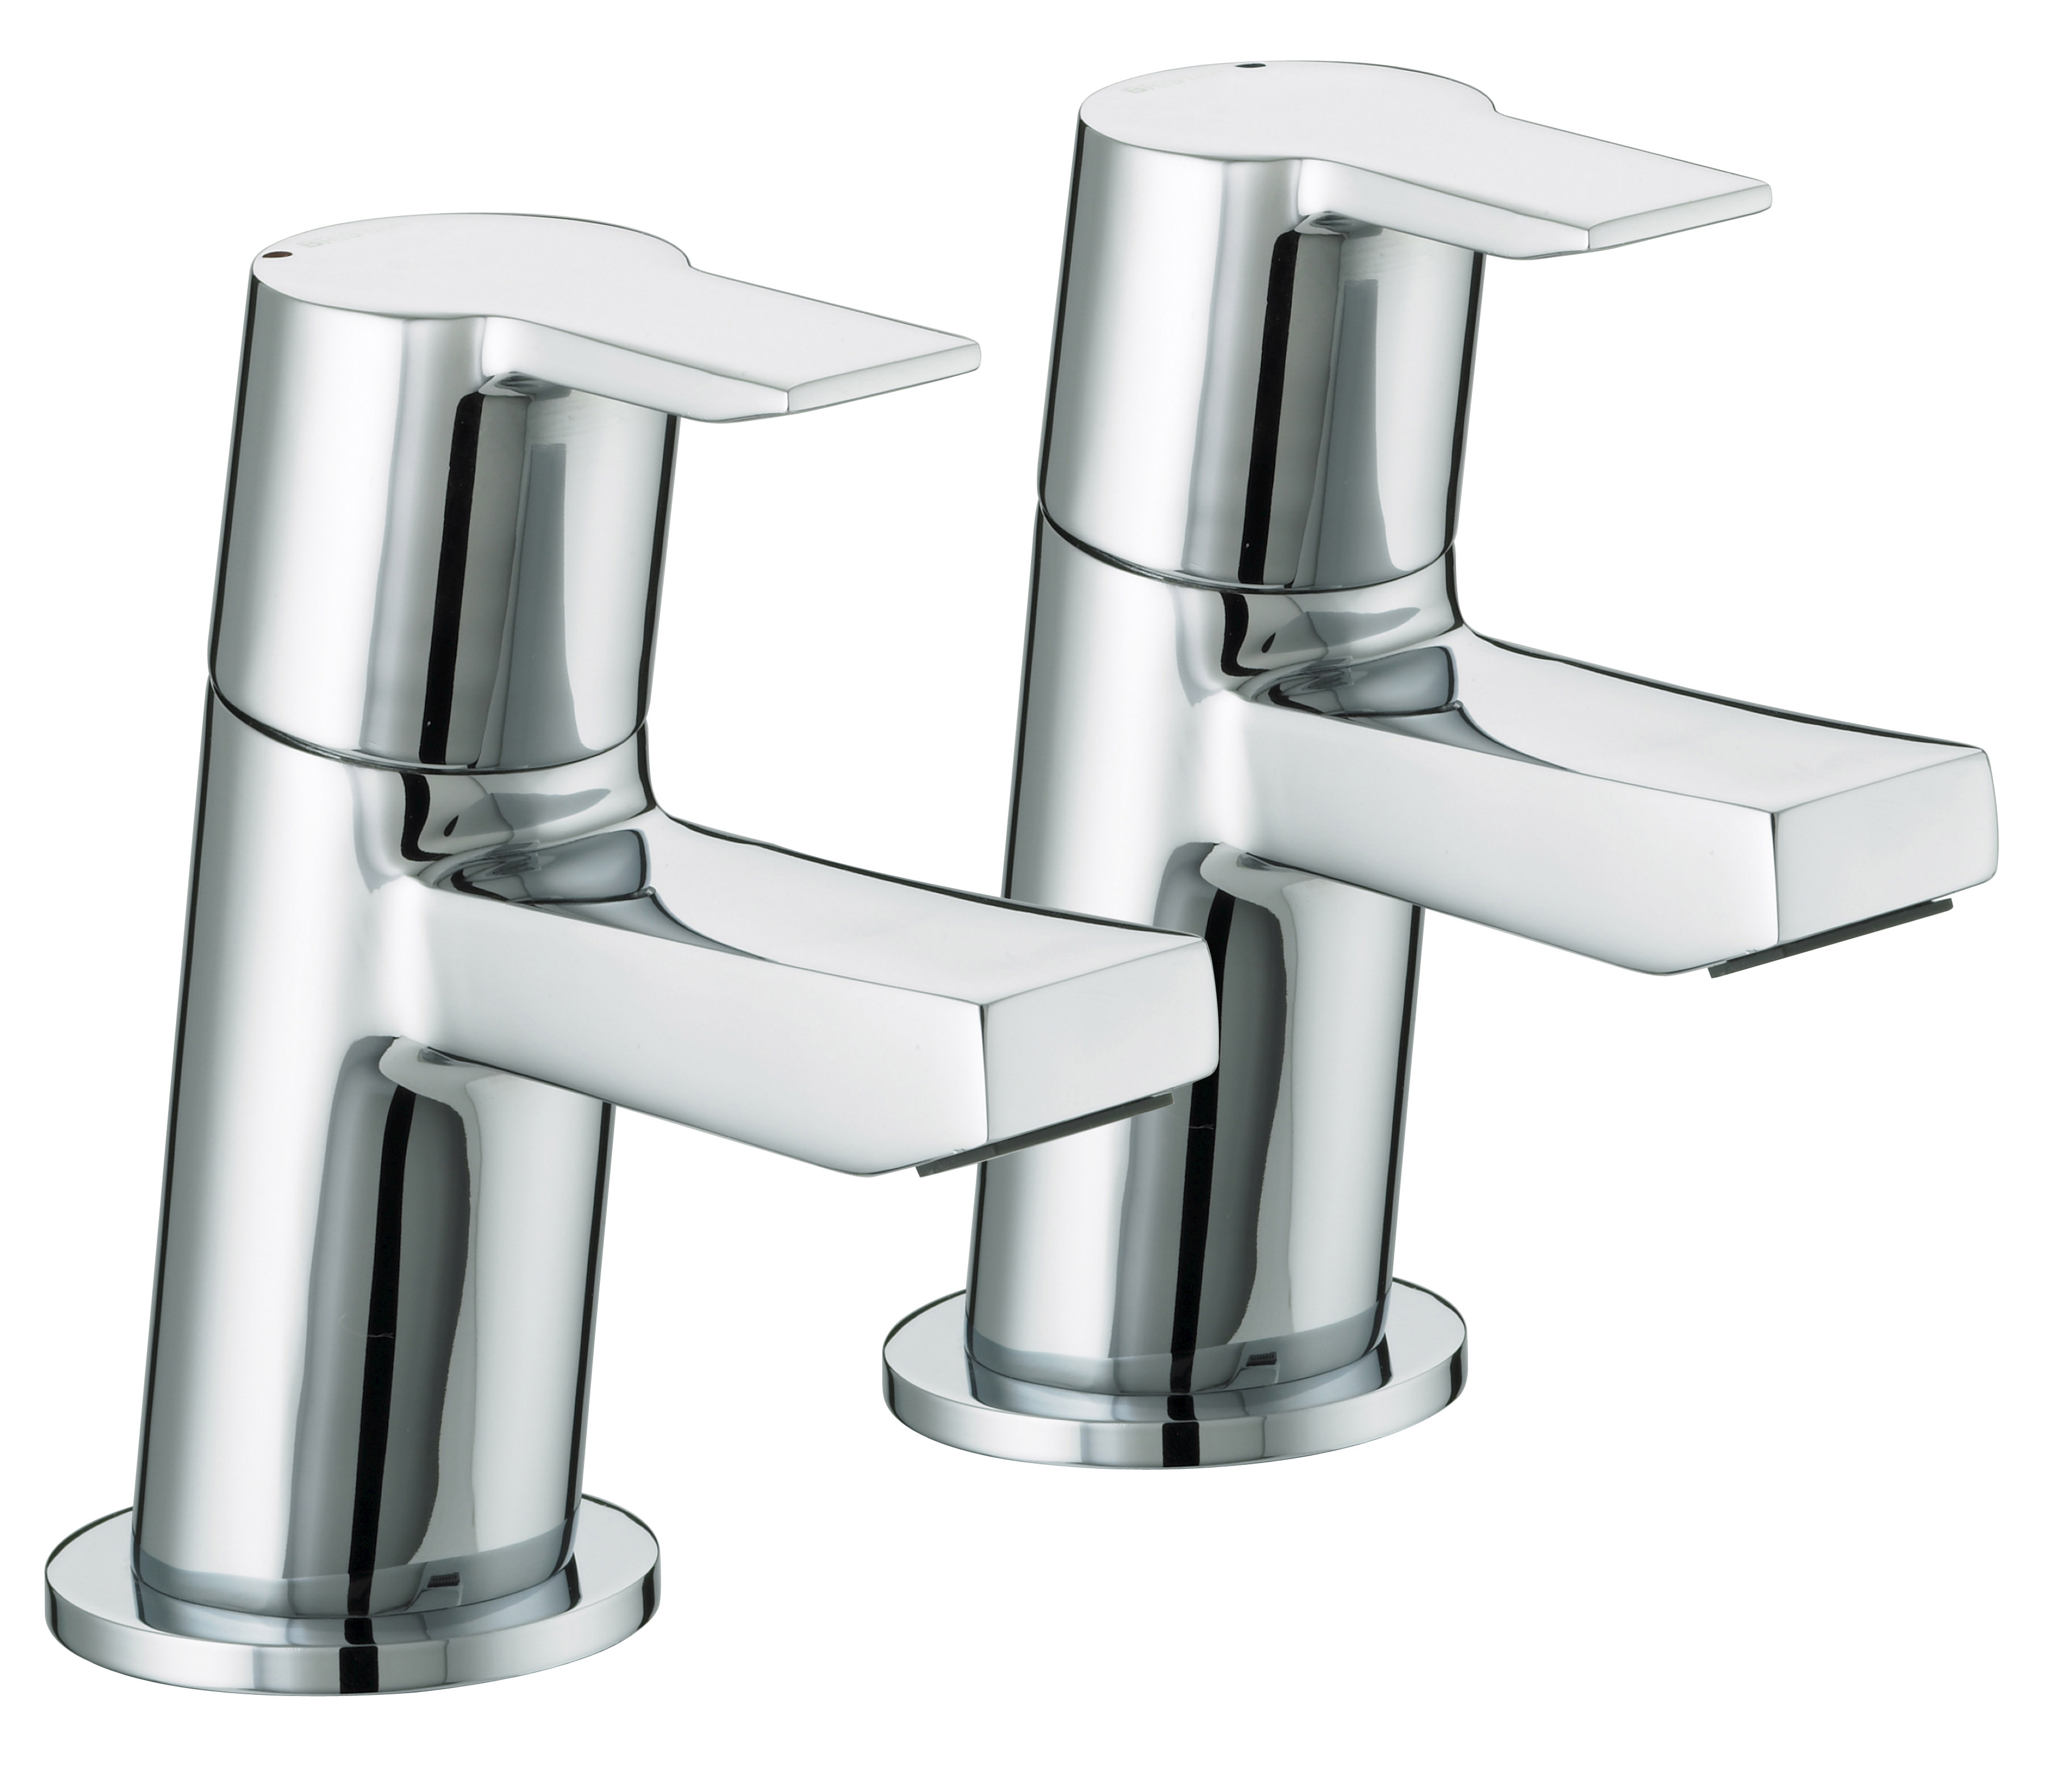 Mama Mia! New taps from Bristan Combine Style with Value